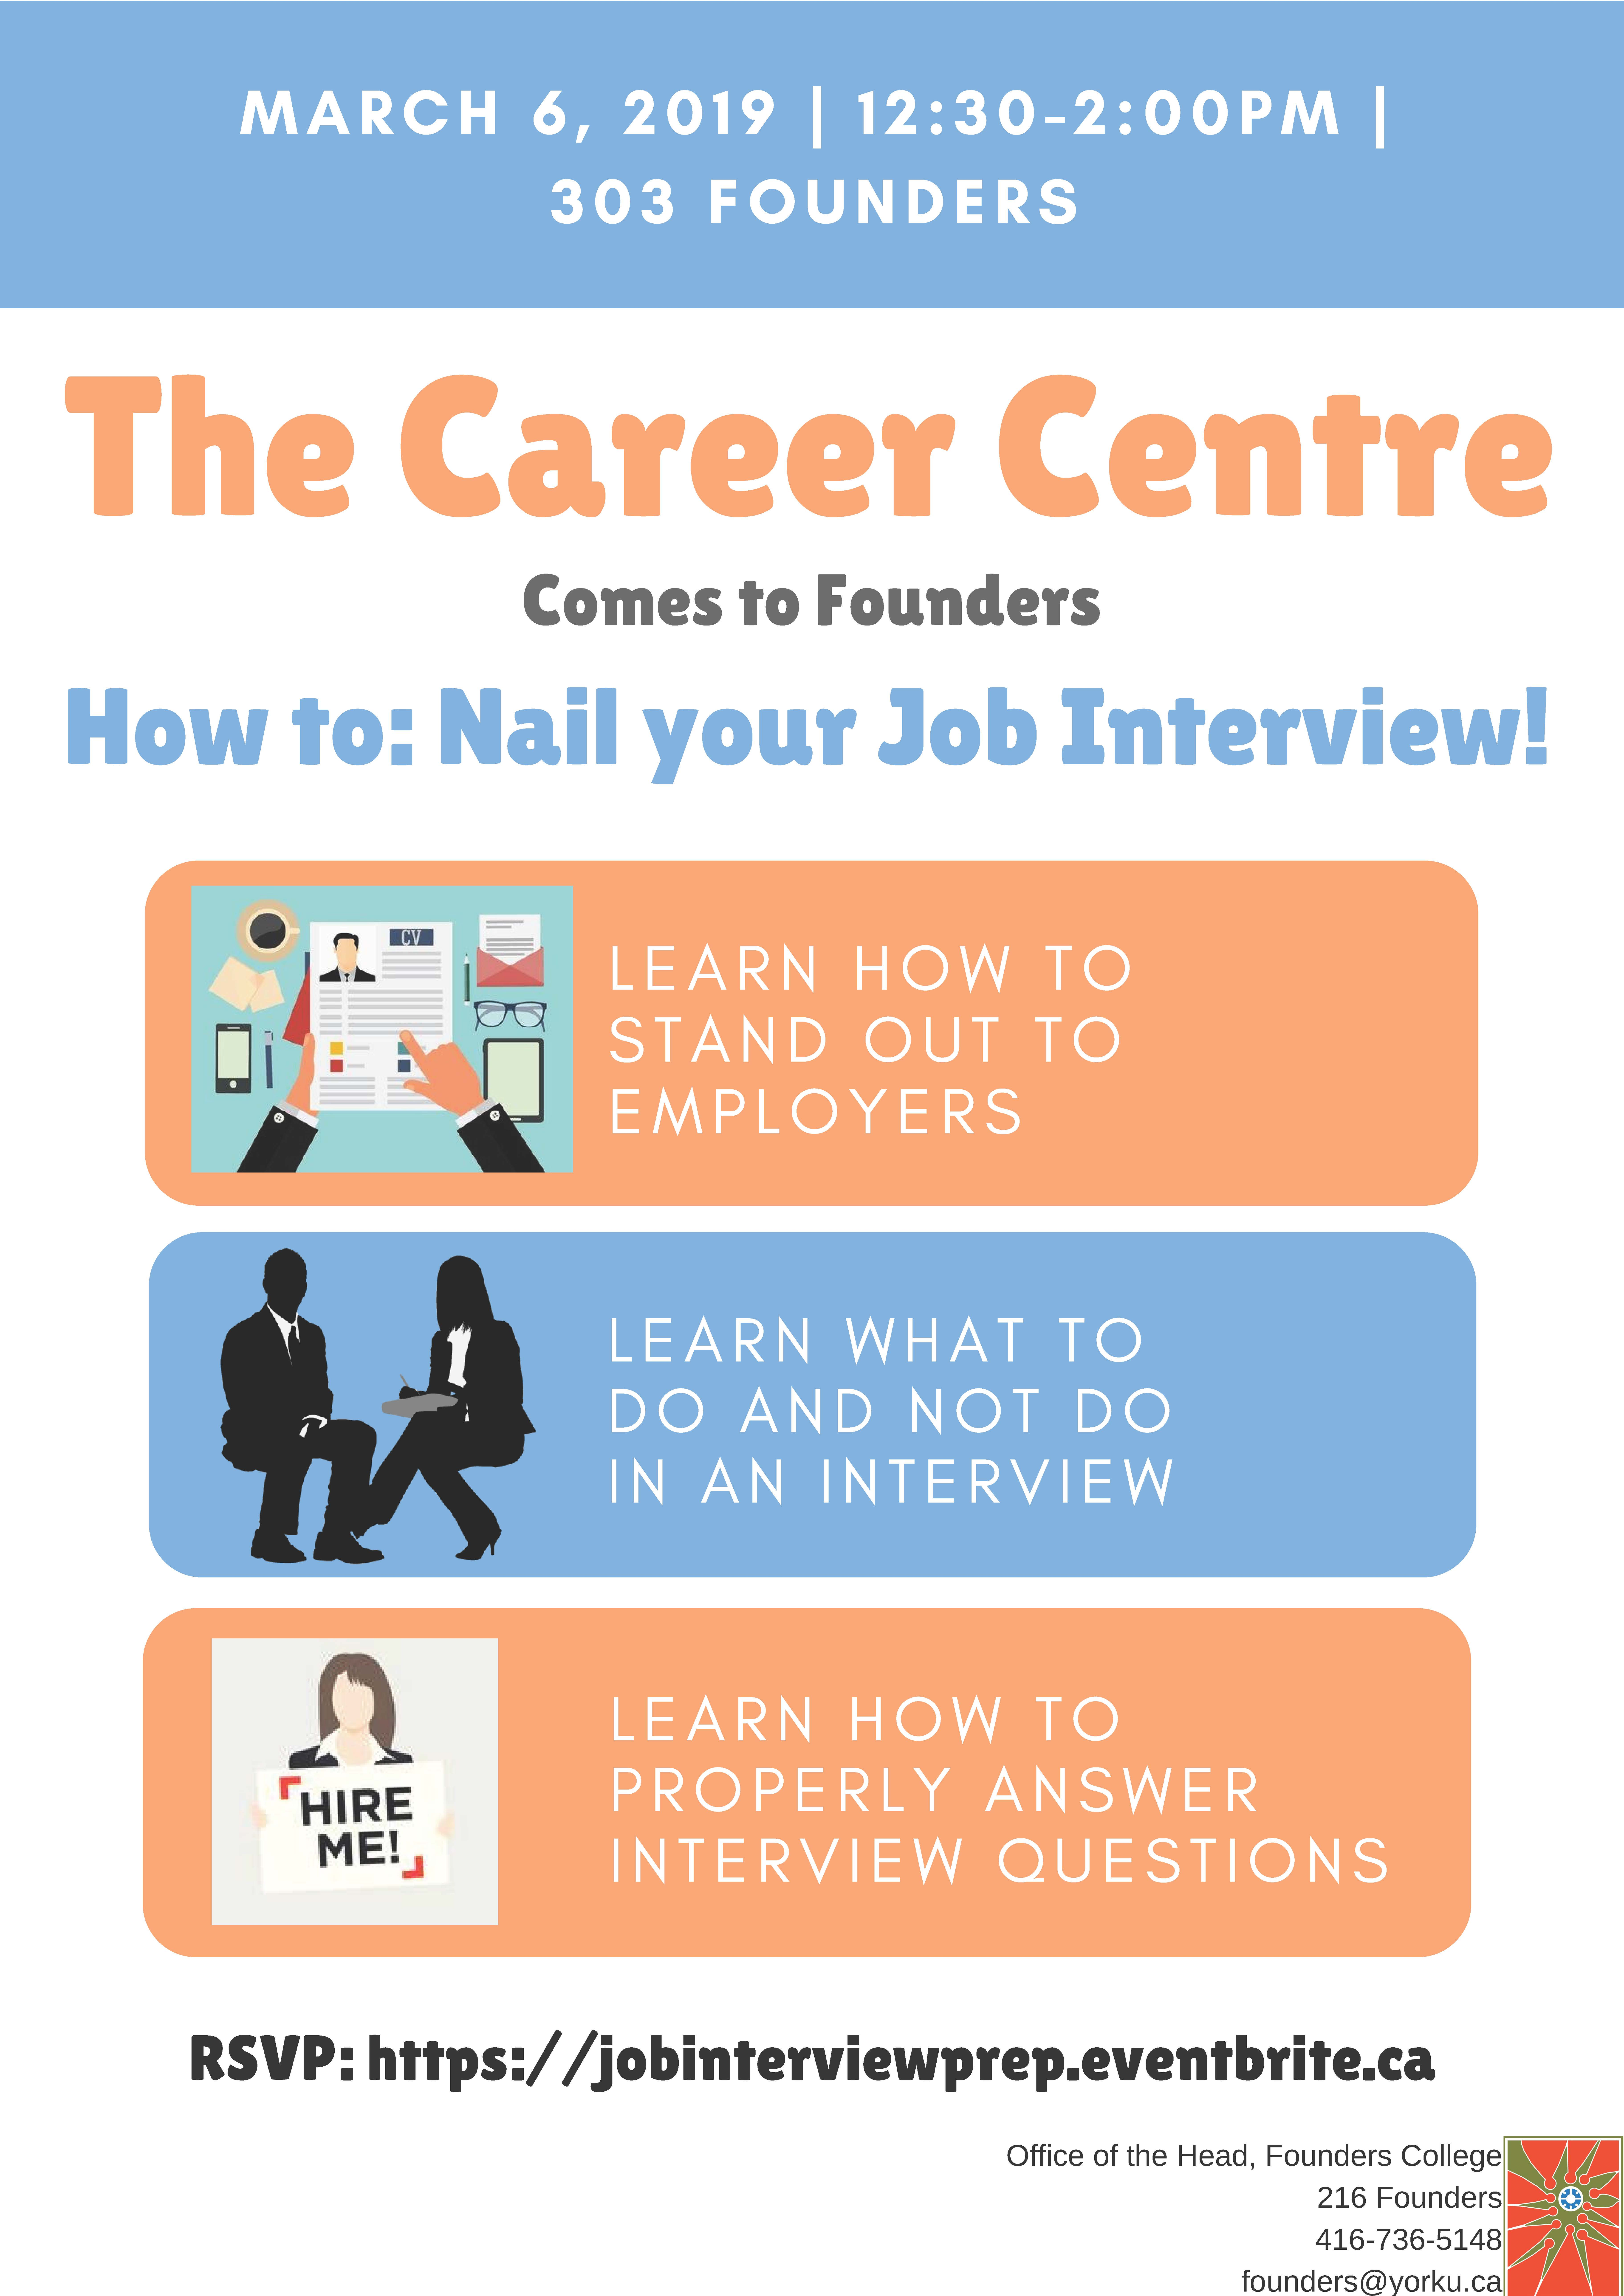 Nail your Job Interview Updated Poster